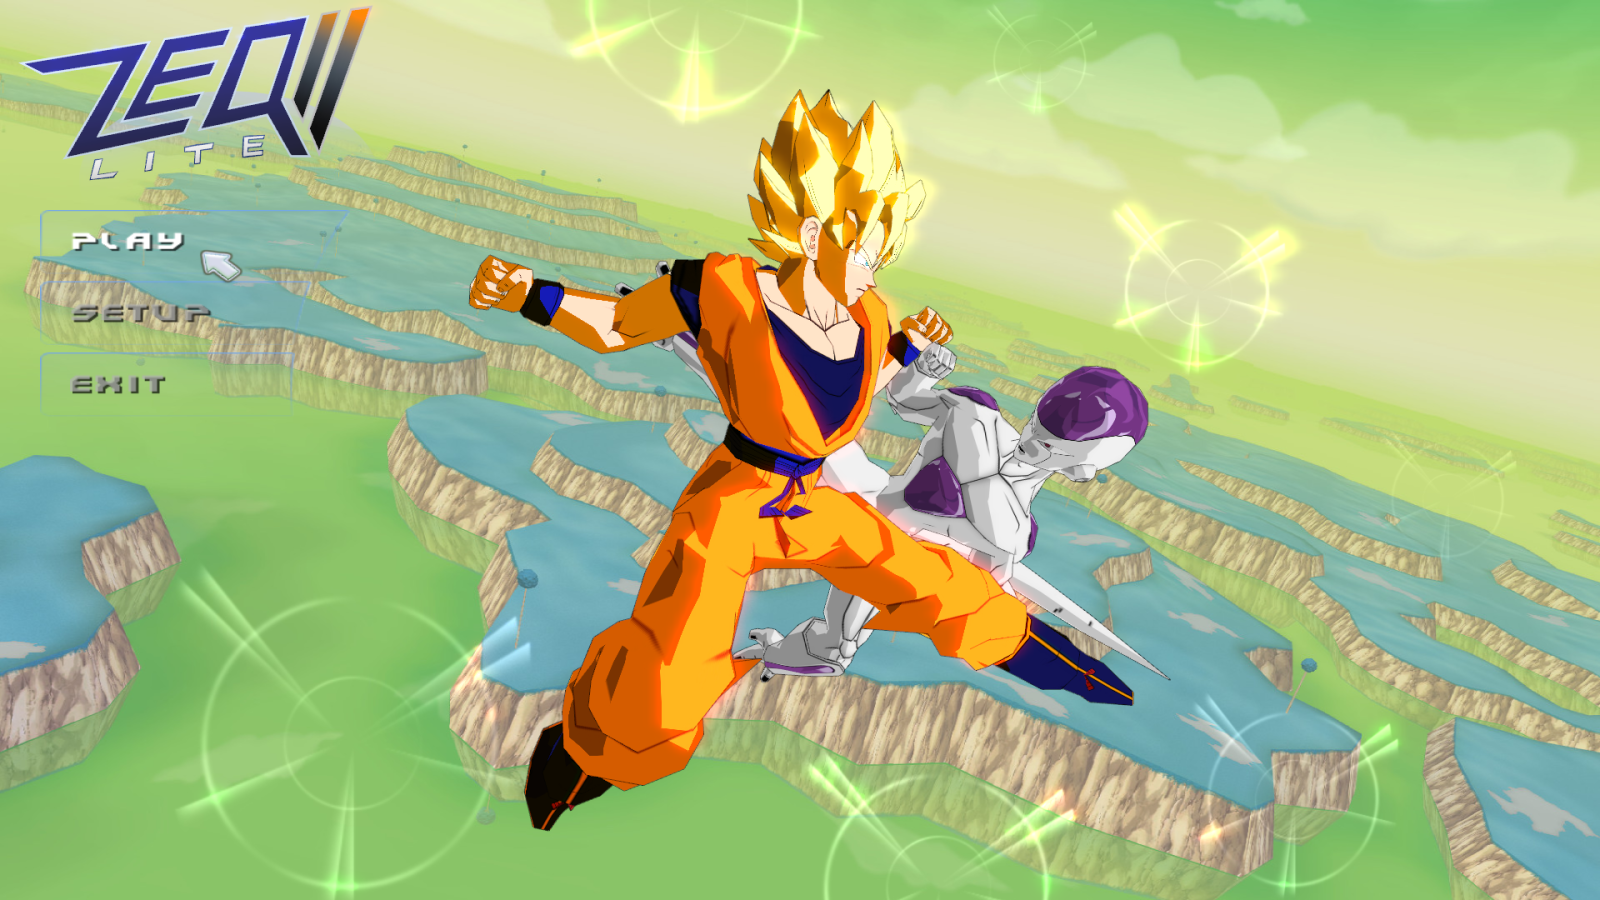 شرح تحميل وتتبيث لعبة Dragon ball z ZEQ2  مضغوطة بحجم 212 MB